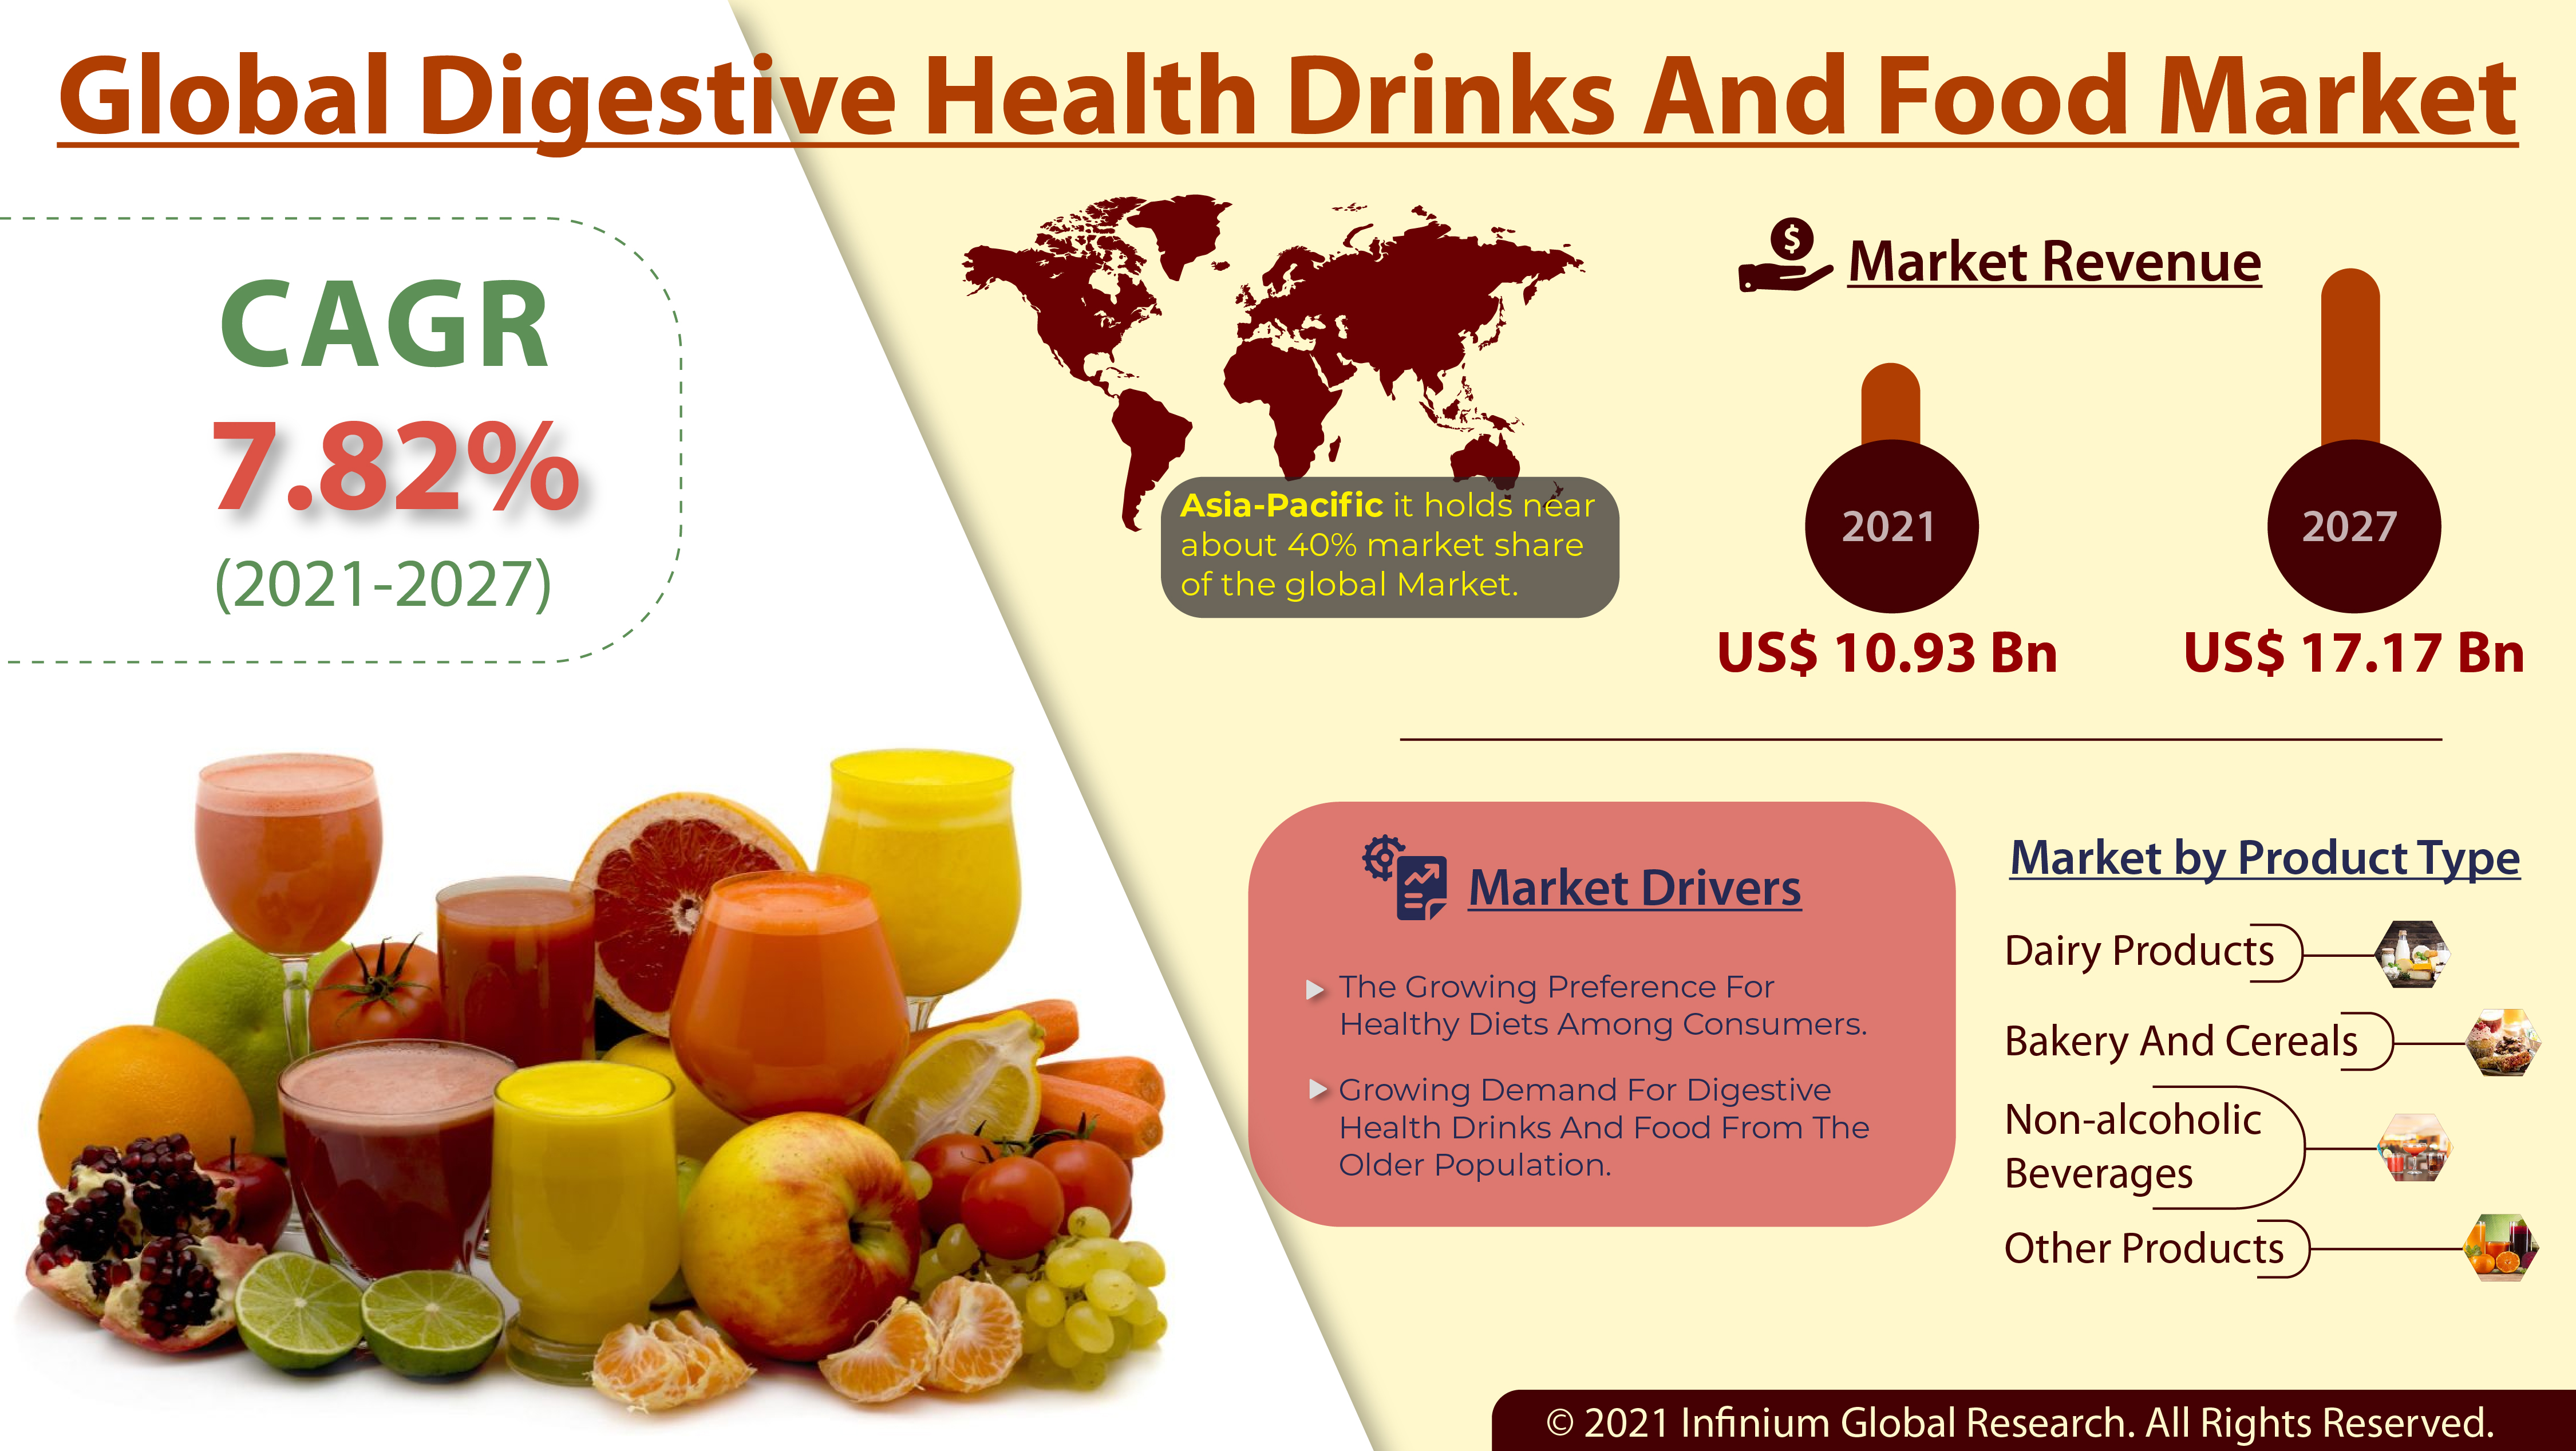 Digestive Health Drinks and Food Market